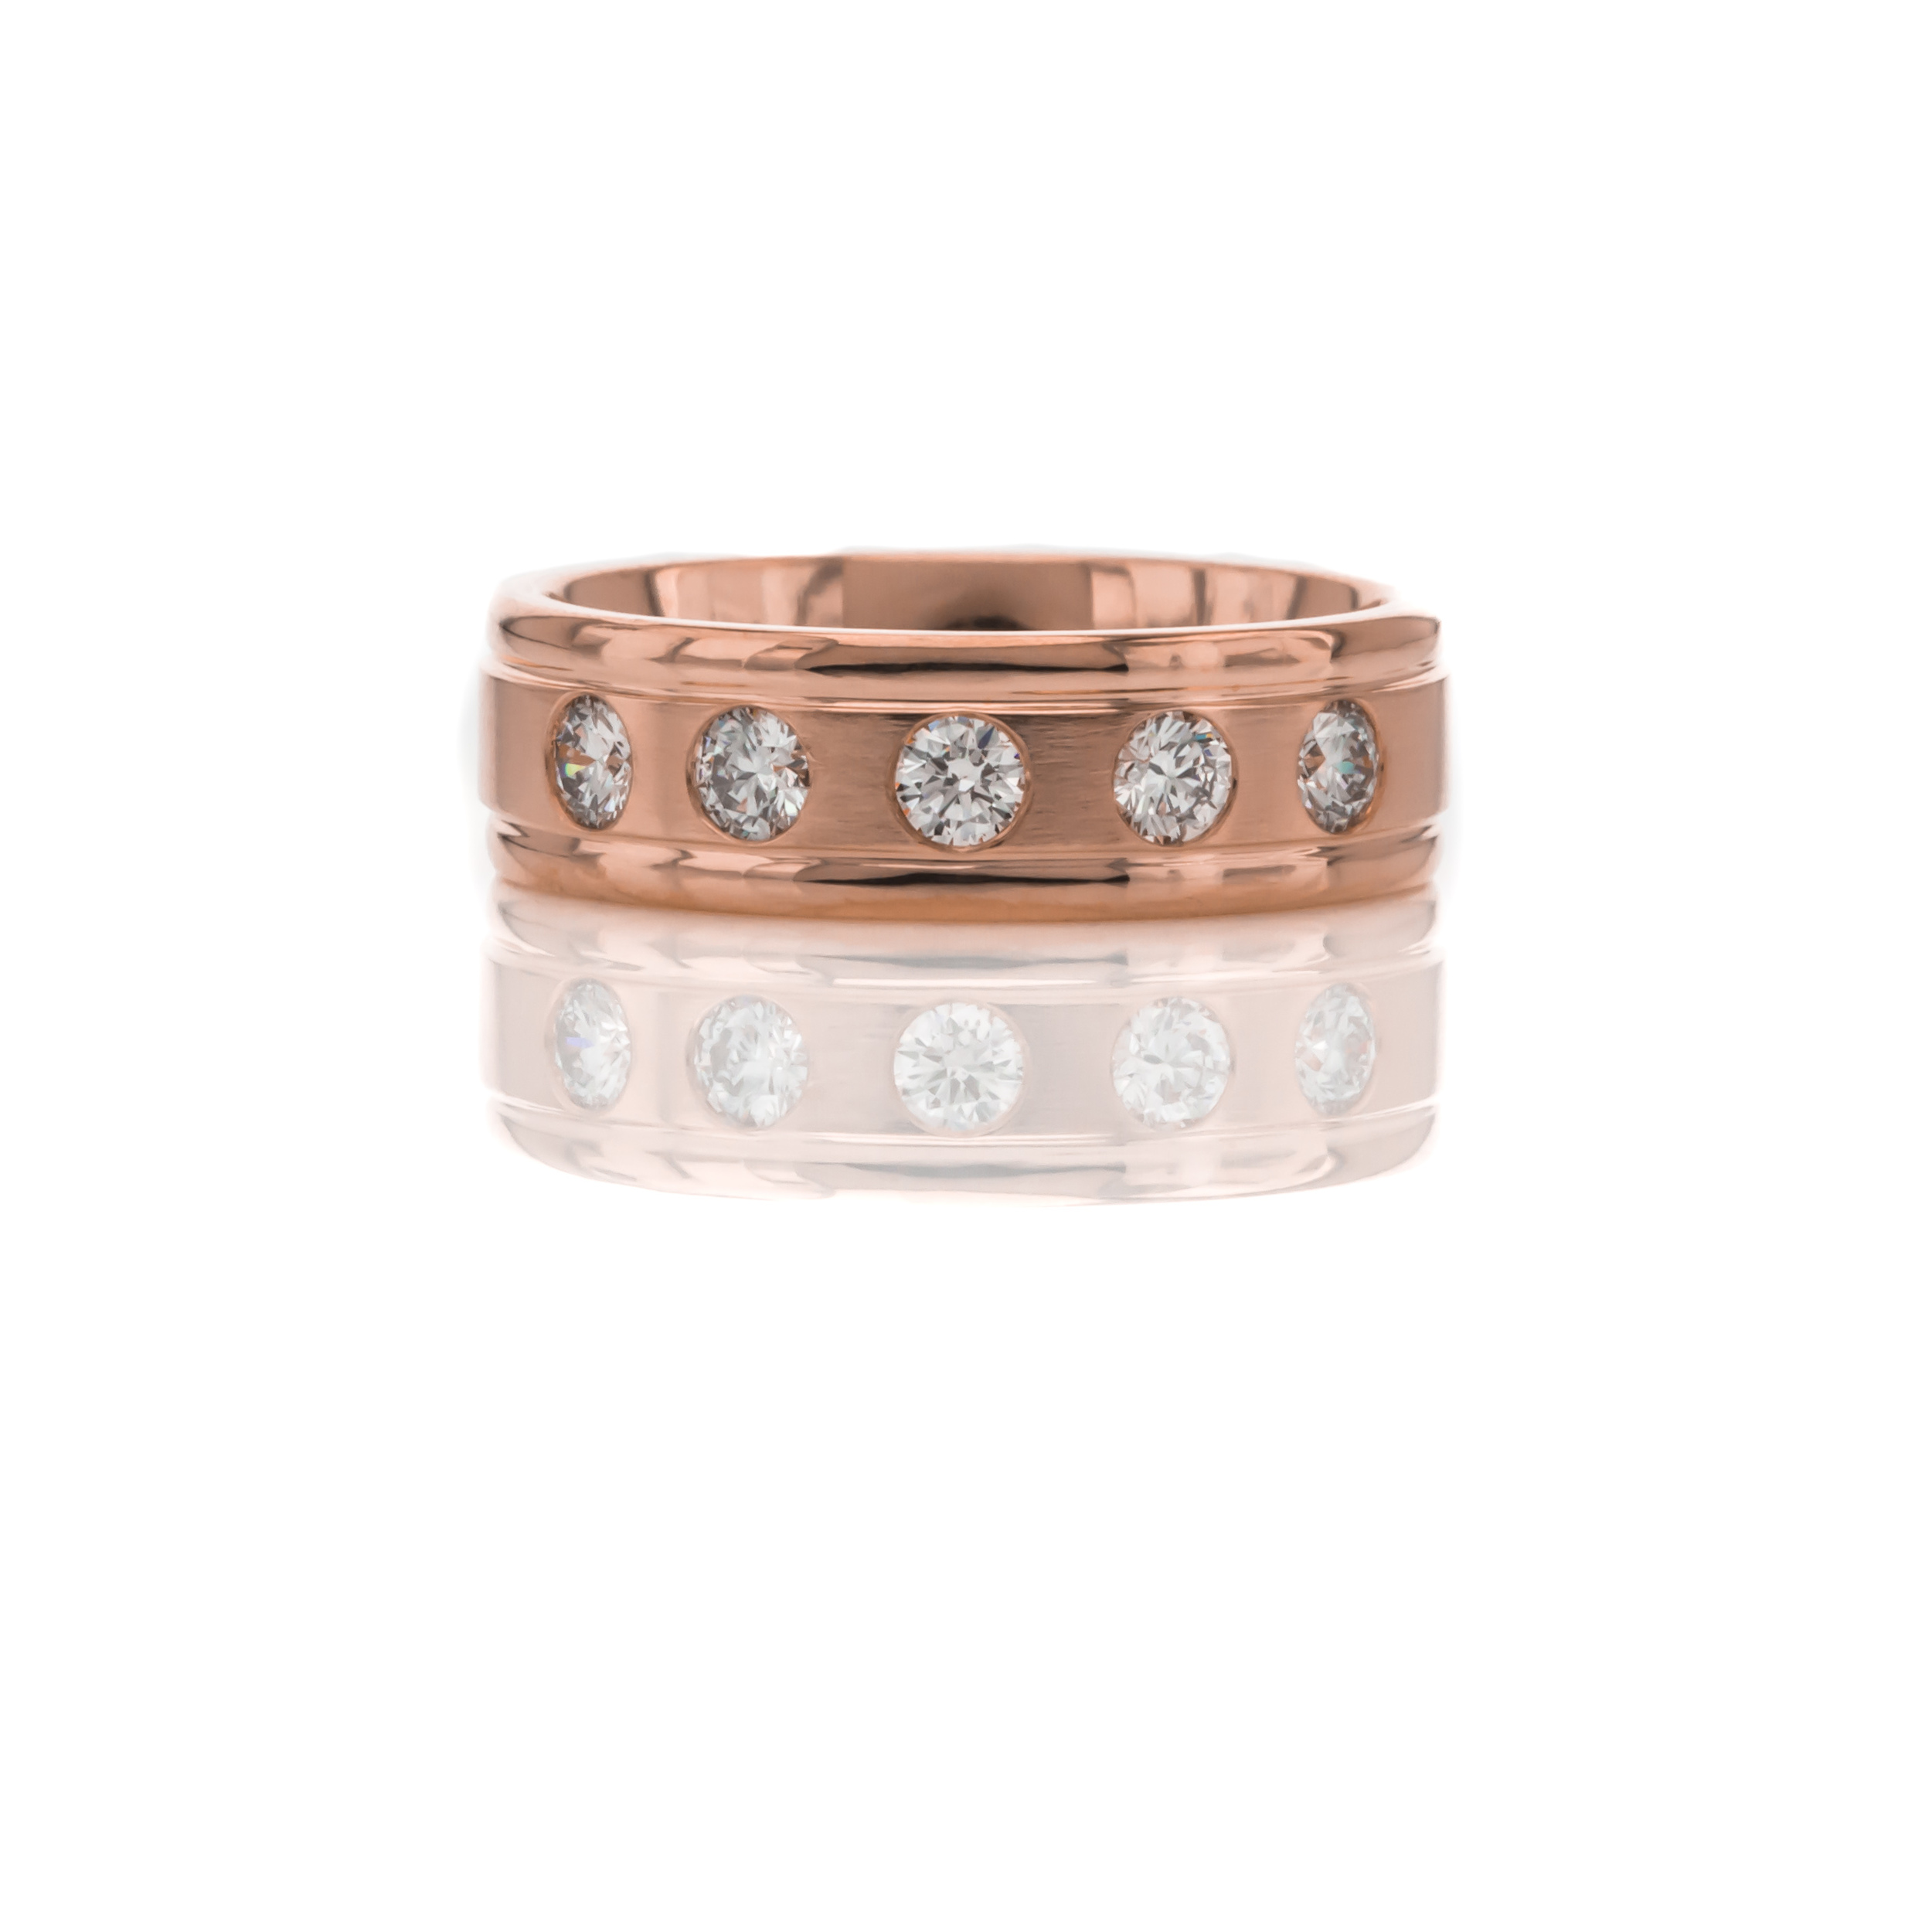 CUSTOM DIAMOND AND ROSE GOLD WEDDING BAND